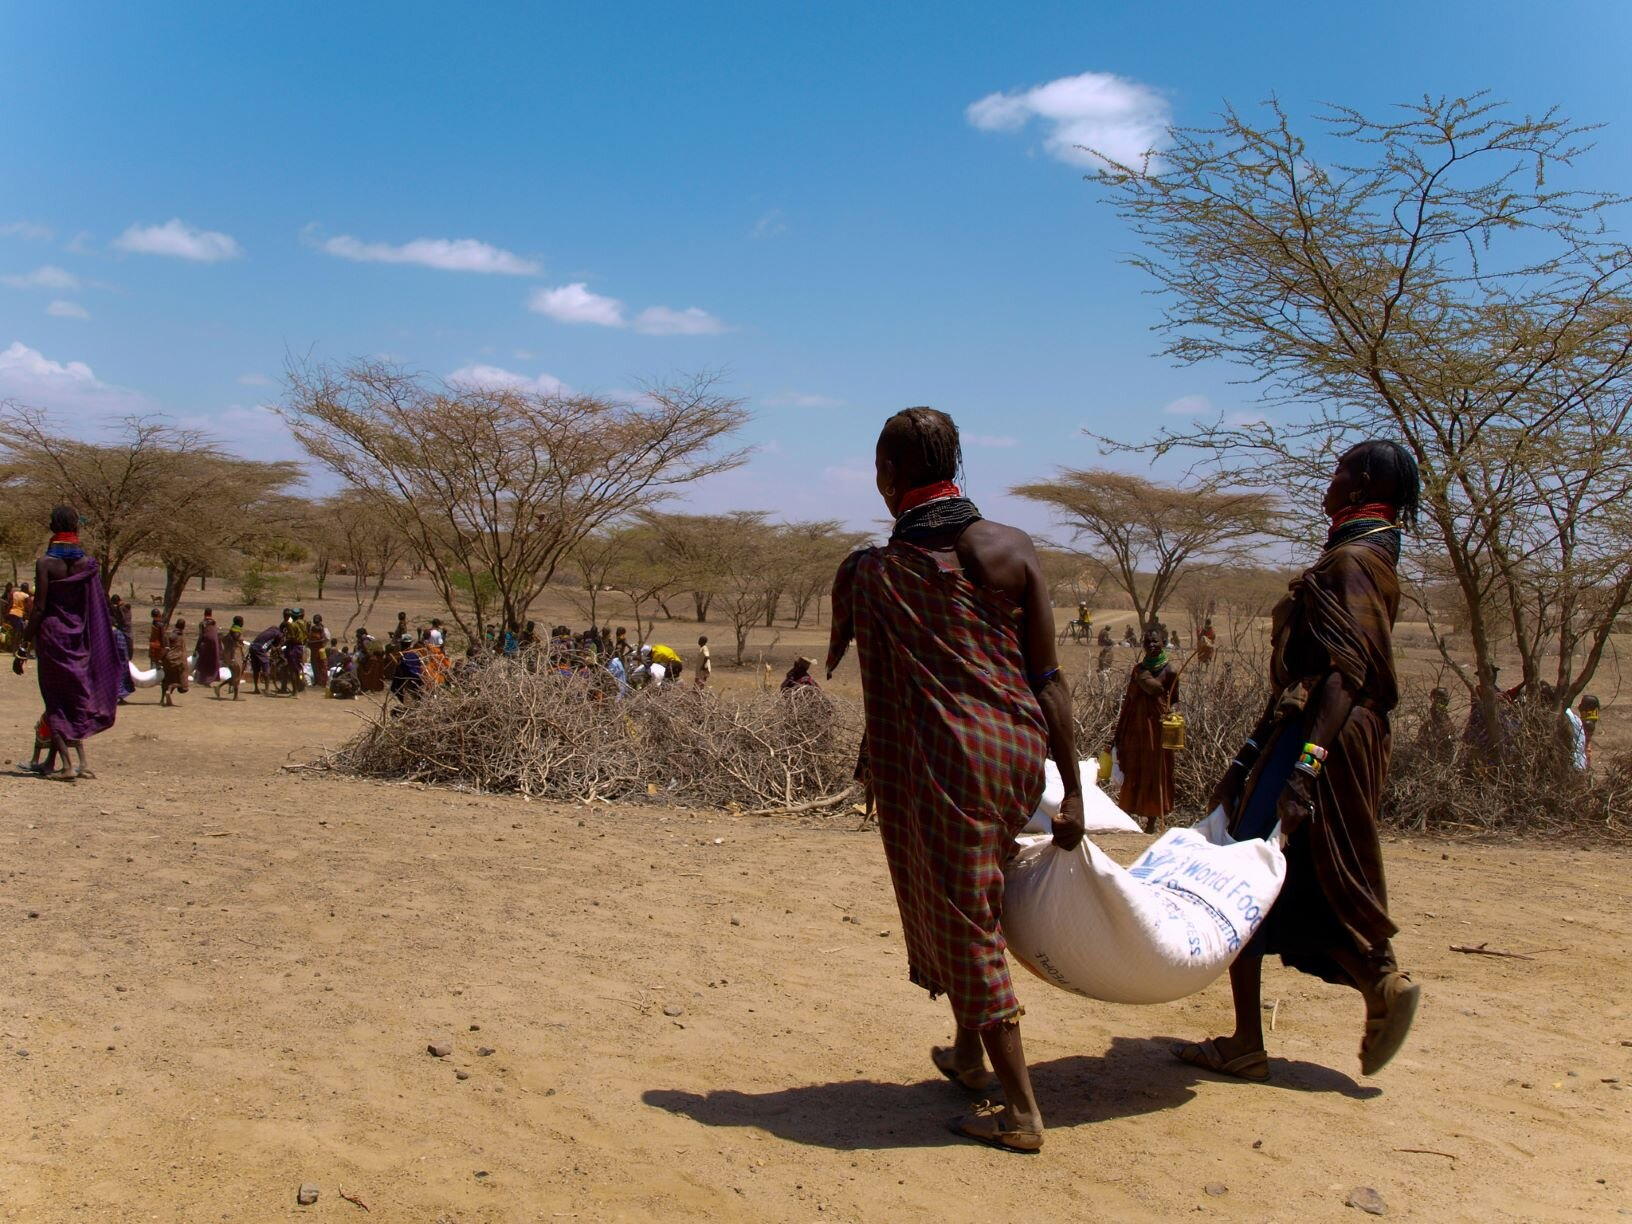 Monitoring conflict and climate could help stop famines before they happen